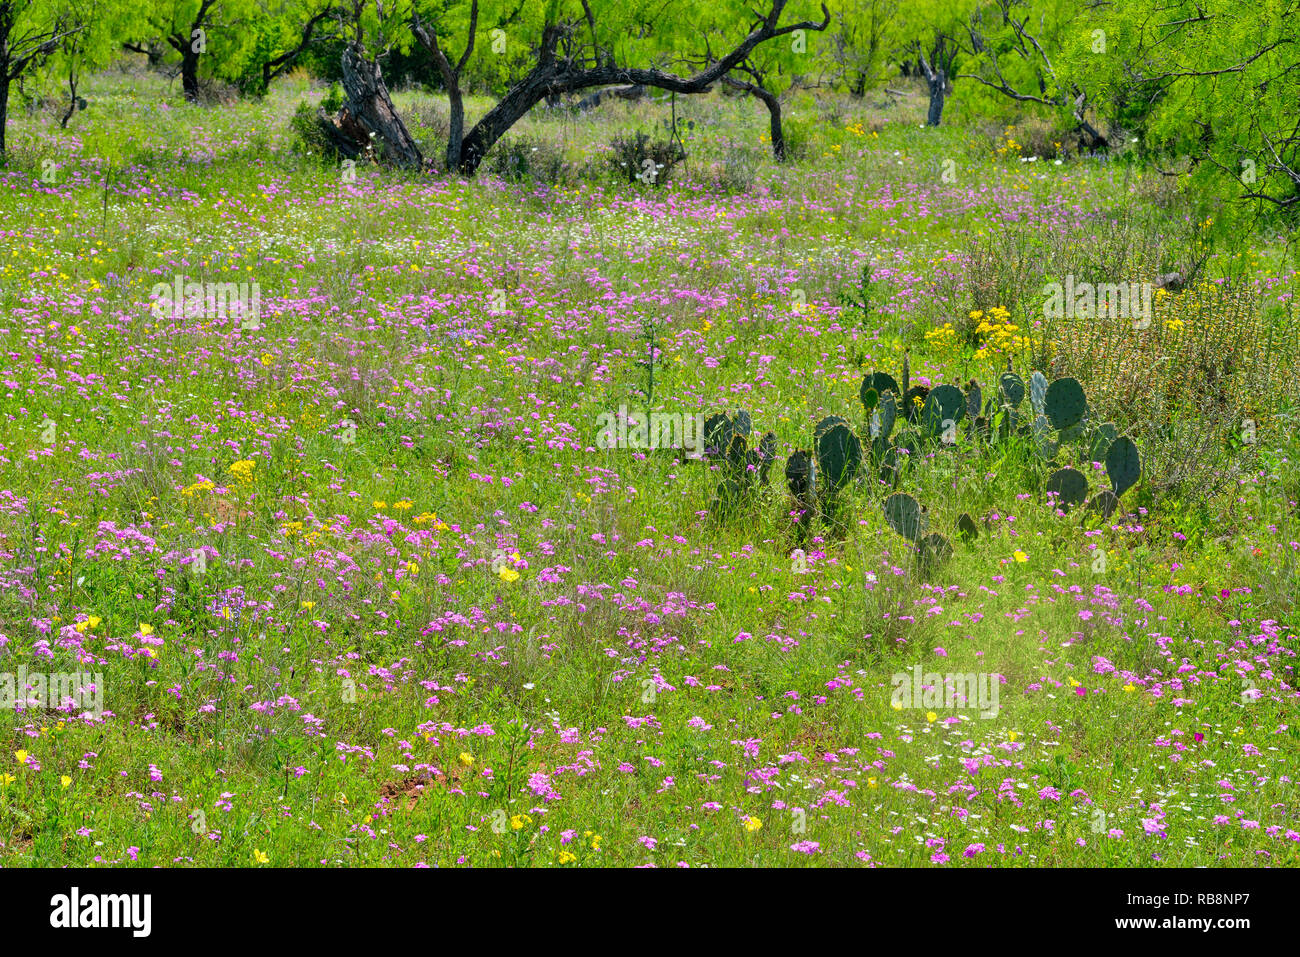 Wildflowers in spring along Ranch Road 152, Mason County, Texas, USA - Stock Image